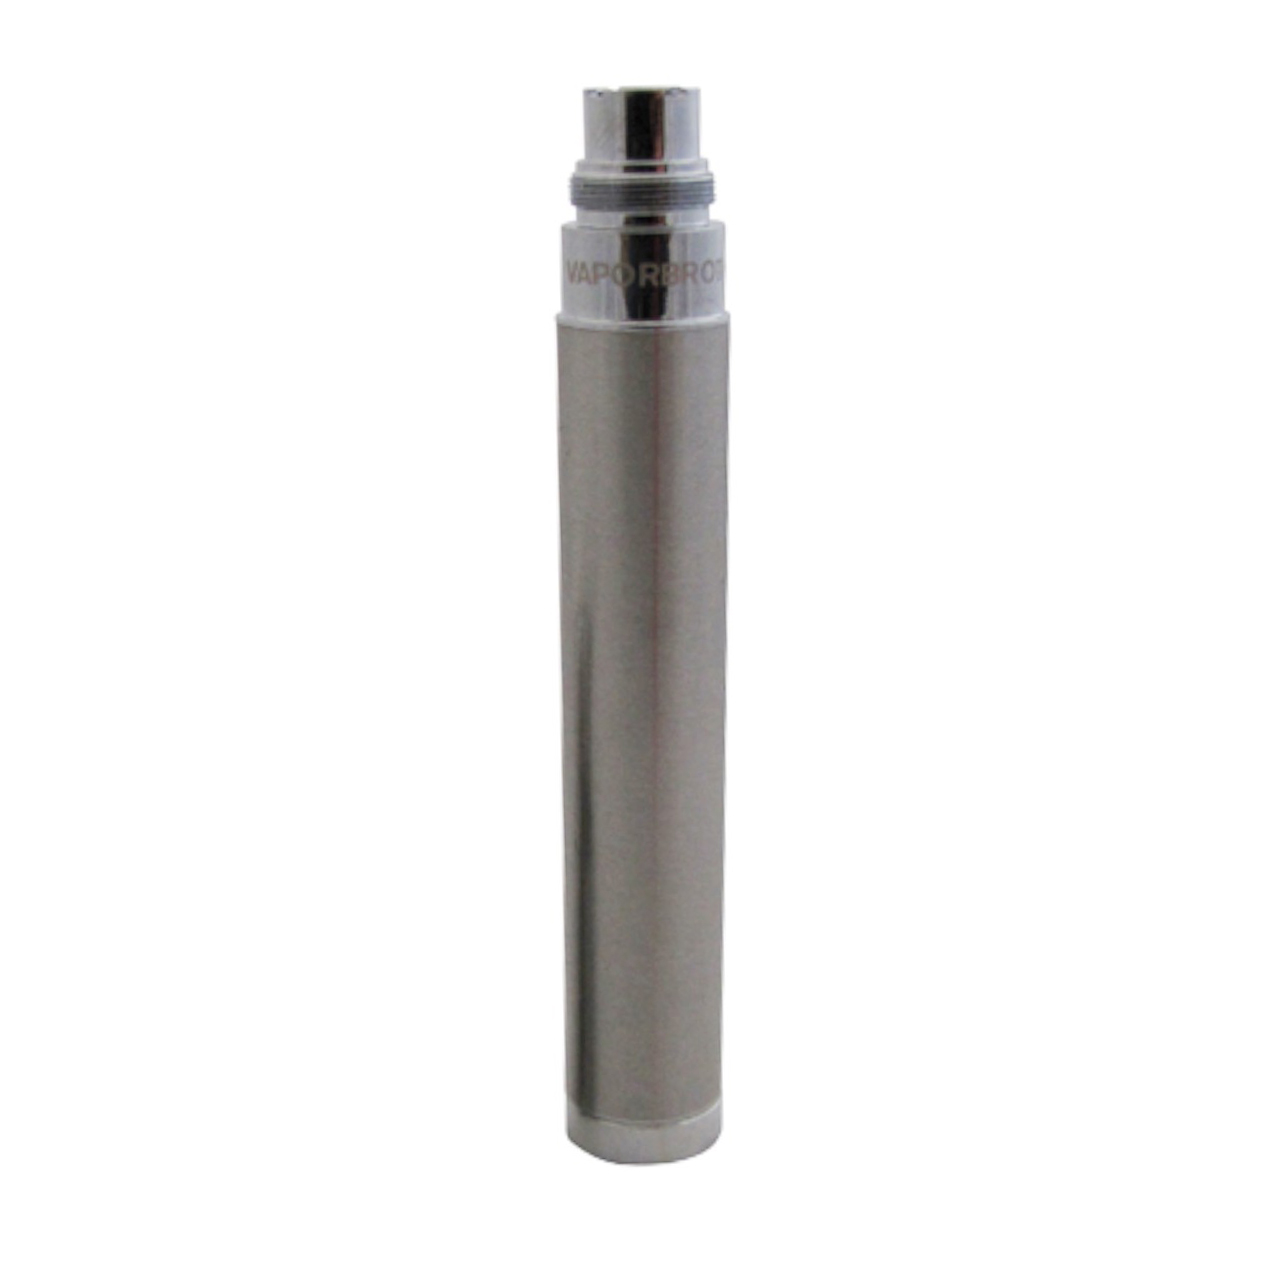 VB Eleven Battery Deluxe 650mAh - Stainless (EGO style with Battery Cap, Mini USB Charger Reqd) (For VB11)